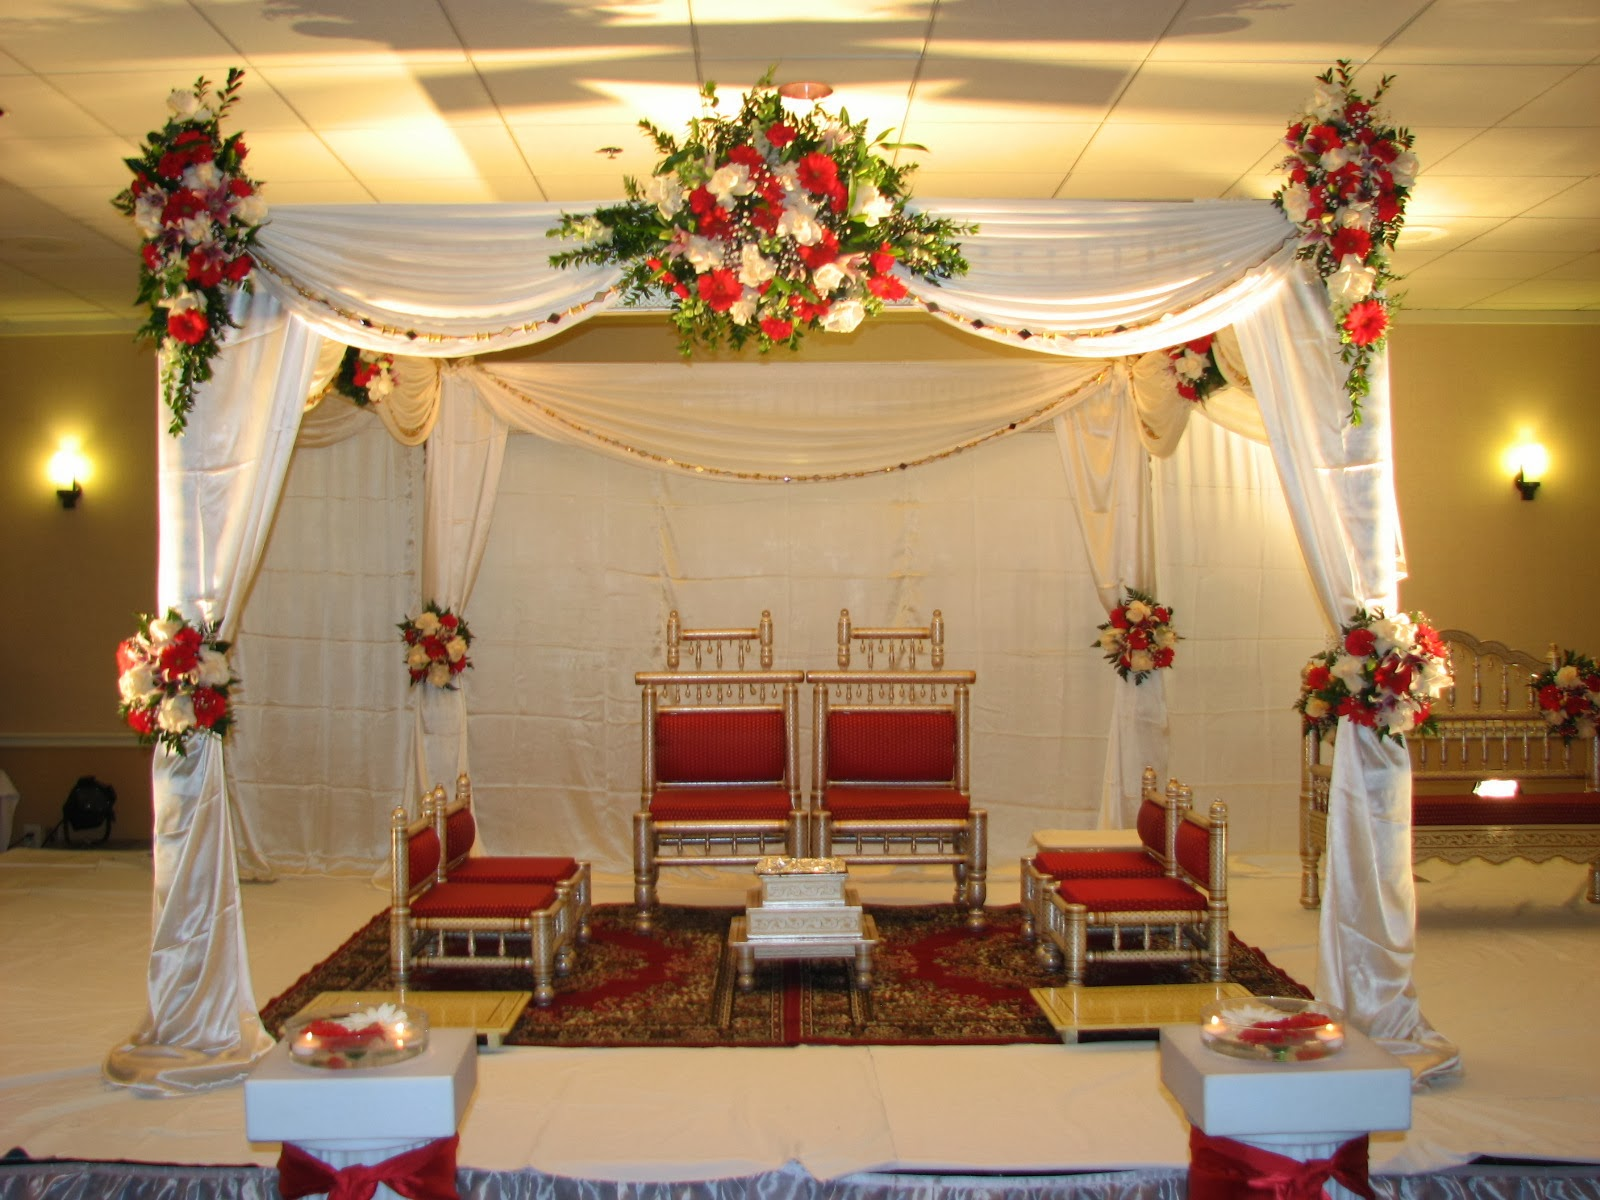 new decoration wallpaper and image download wedding hall decoration hd 1600x1200